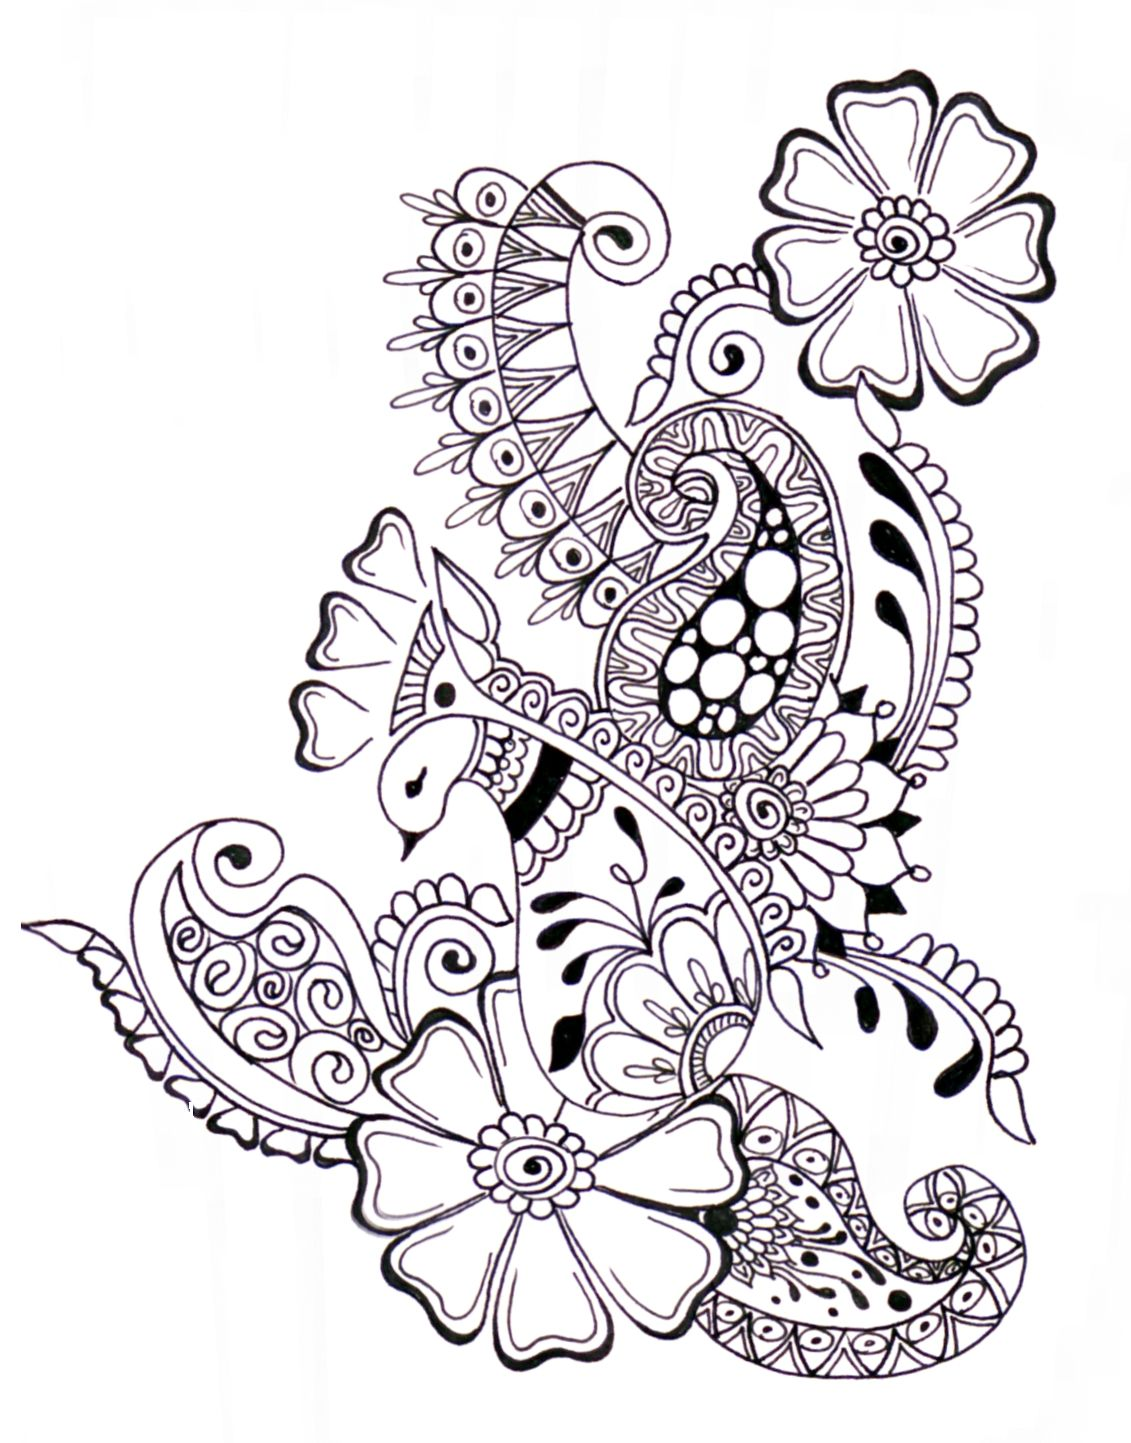 Zentangle Doodles Pinterest Doodles Coloring pages and Zentangle